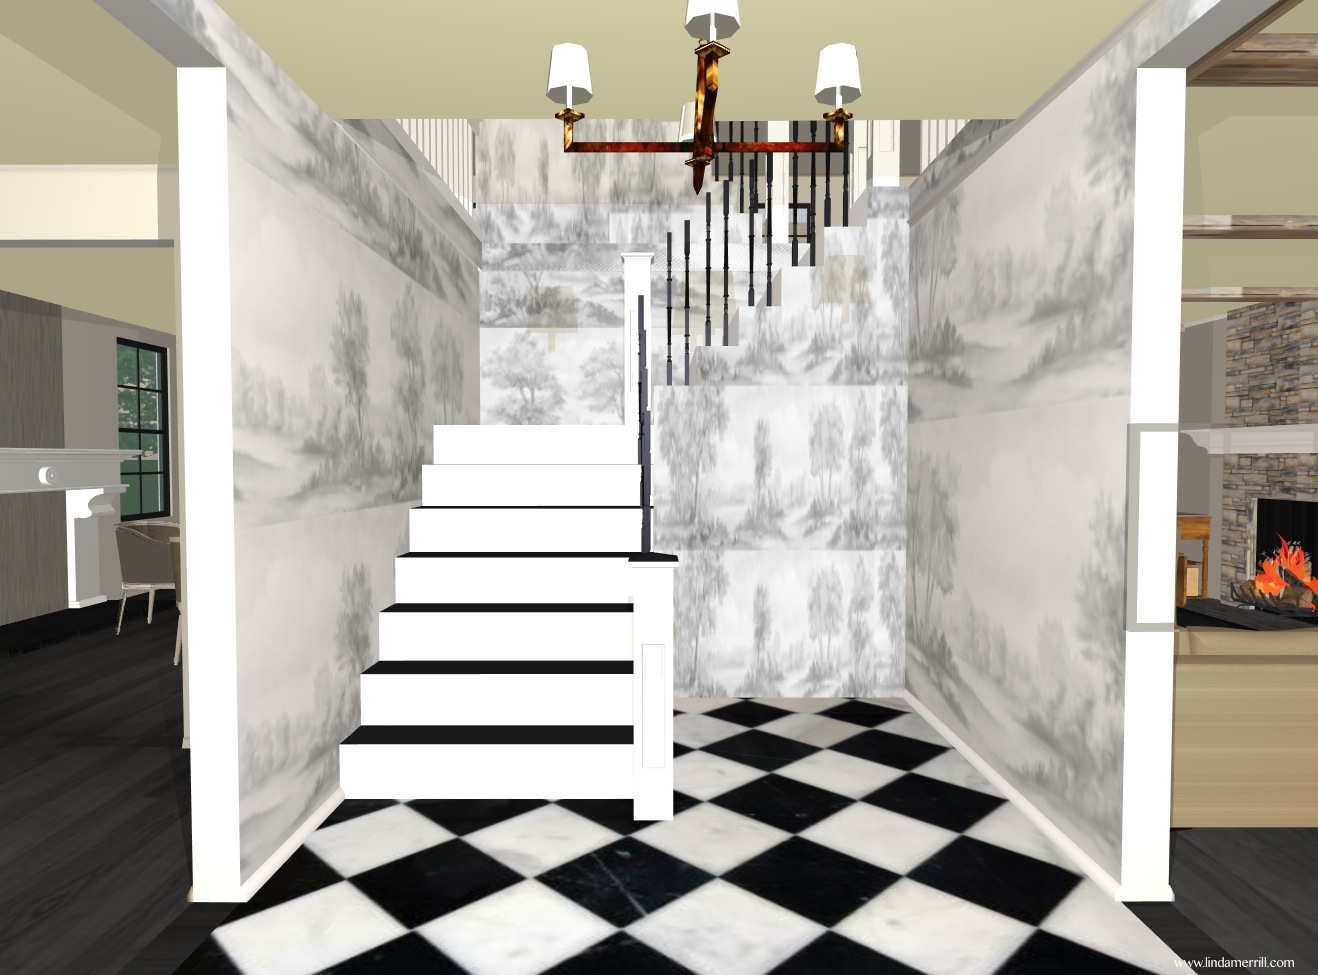 Home design interior: linda's dream house: roof lines and the foyer